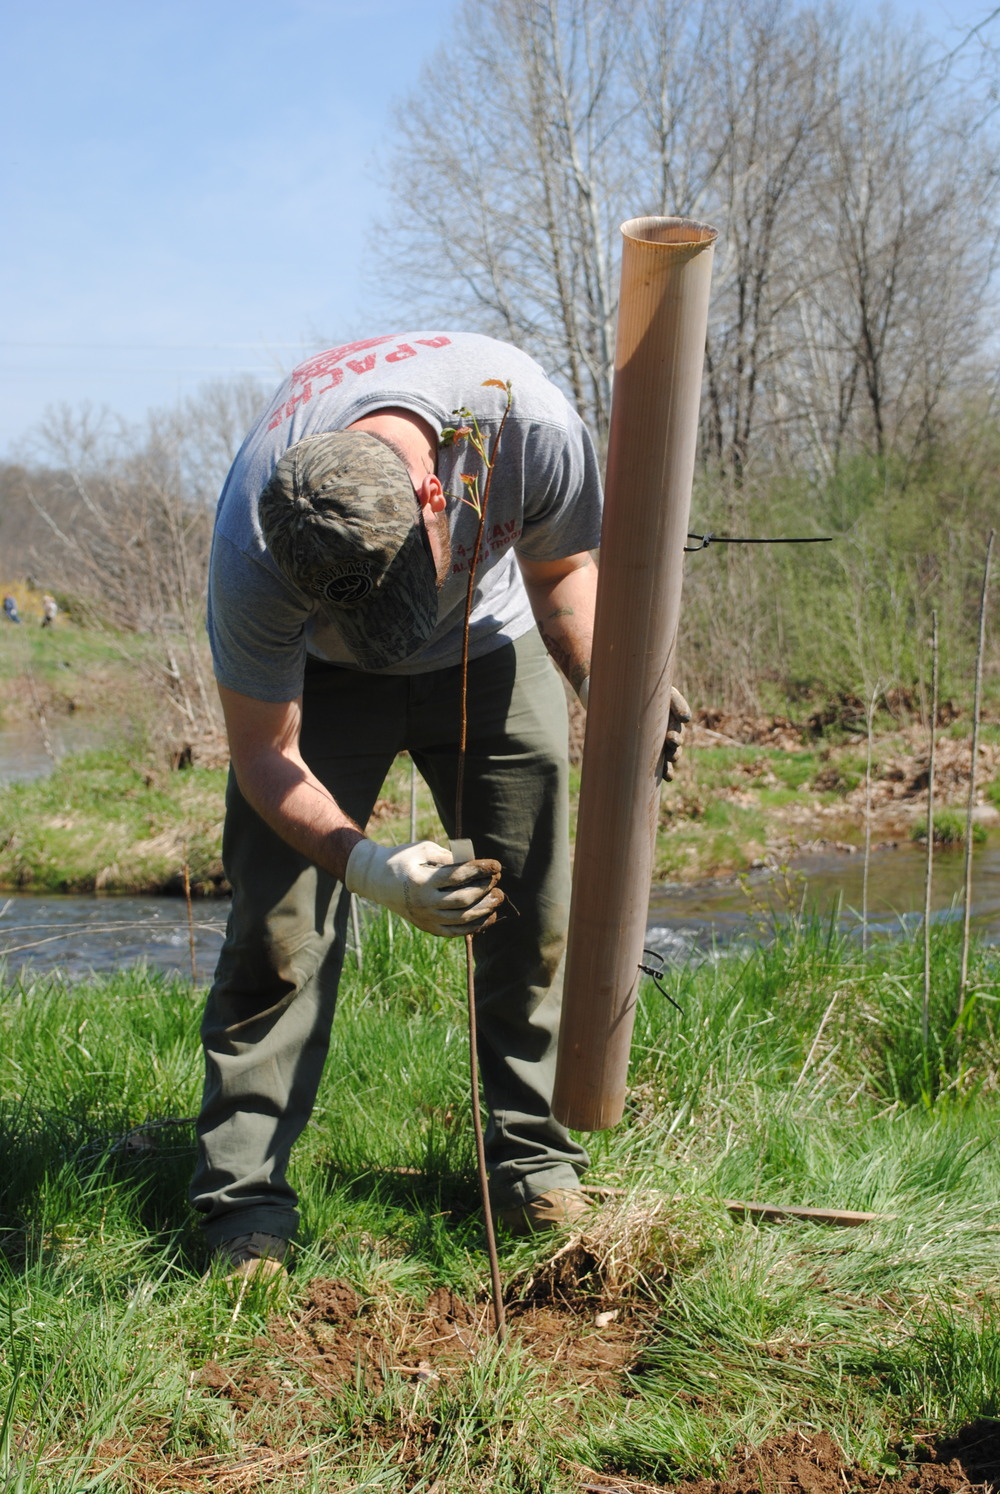 jOE, A RANGER AT cUNNINGHAM fALLS sTATE PARK, securing a tree tube around a newly planted tree.